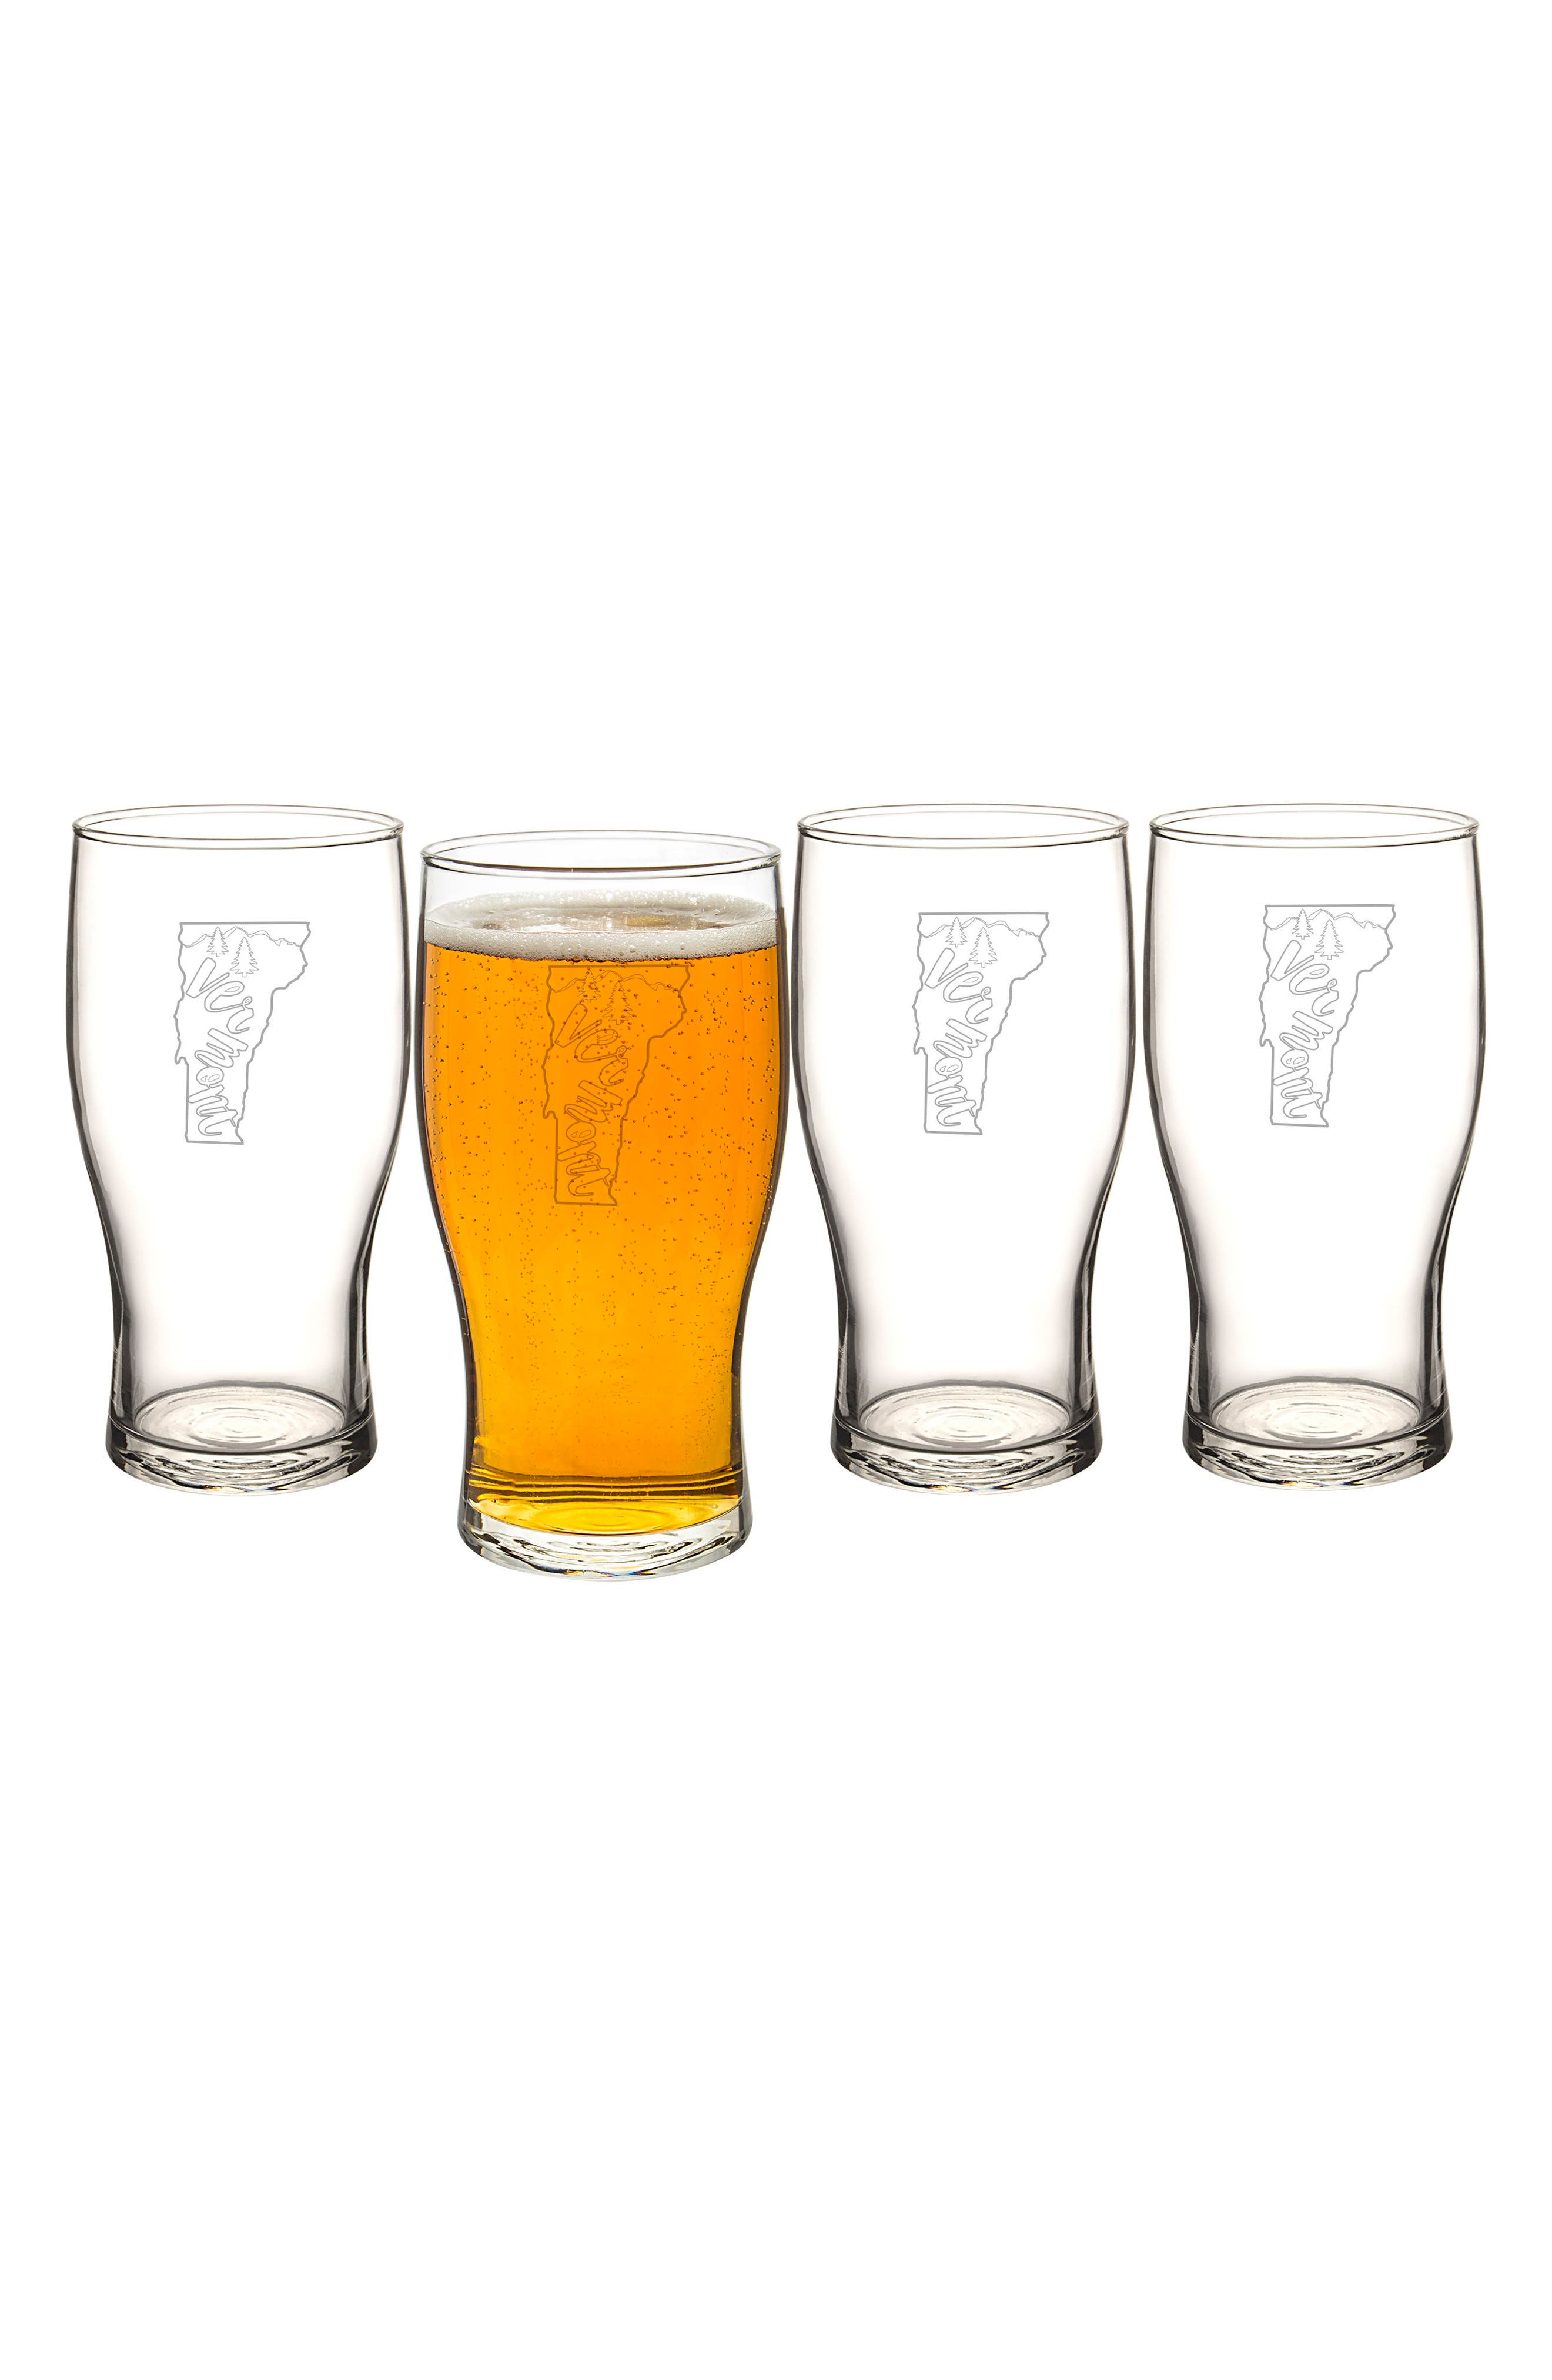 Main Image - Cathy's Concepts State Set of 4 Pilsner Glasses